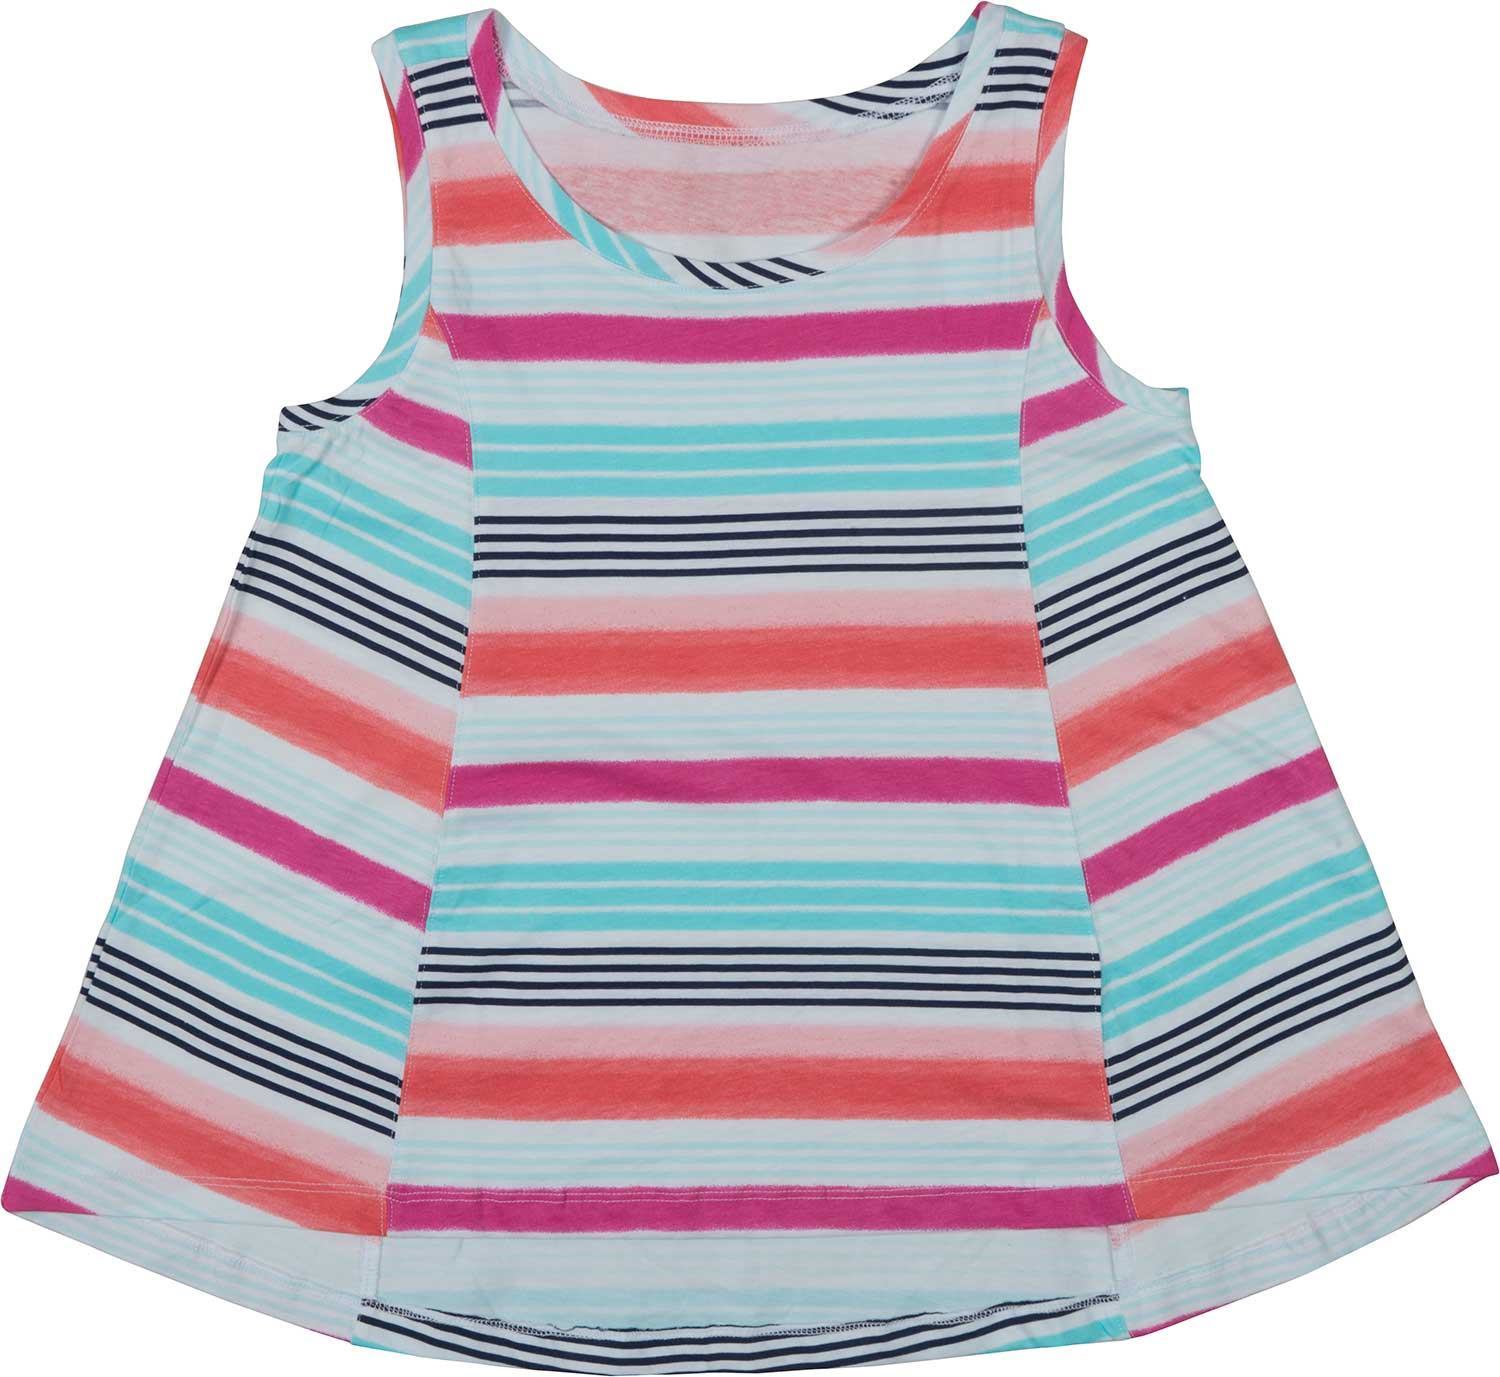 Girls Apparel Manufacturers in India Eastman Exports